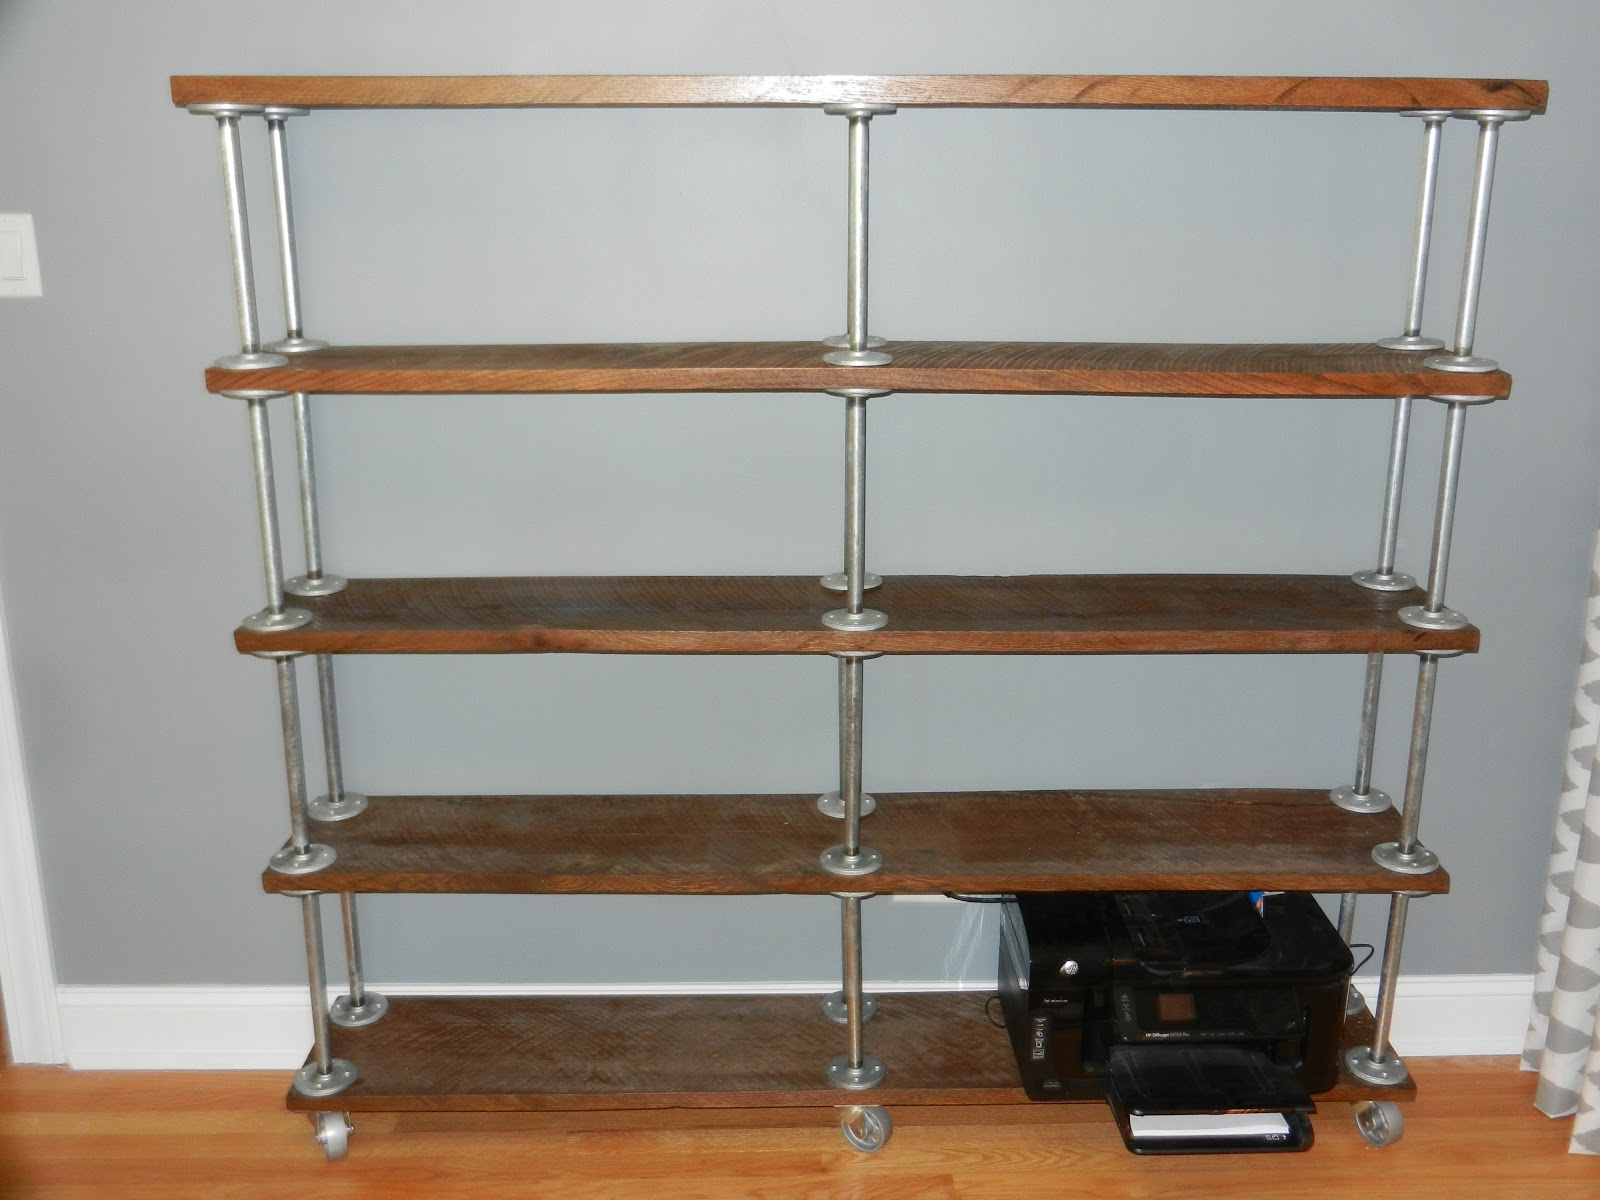 Diy industrial bookshelf manteresting for Diy industrial bookshelf